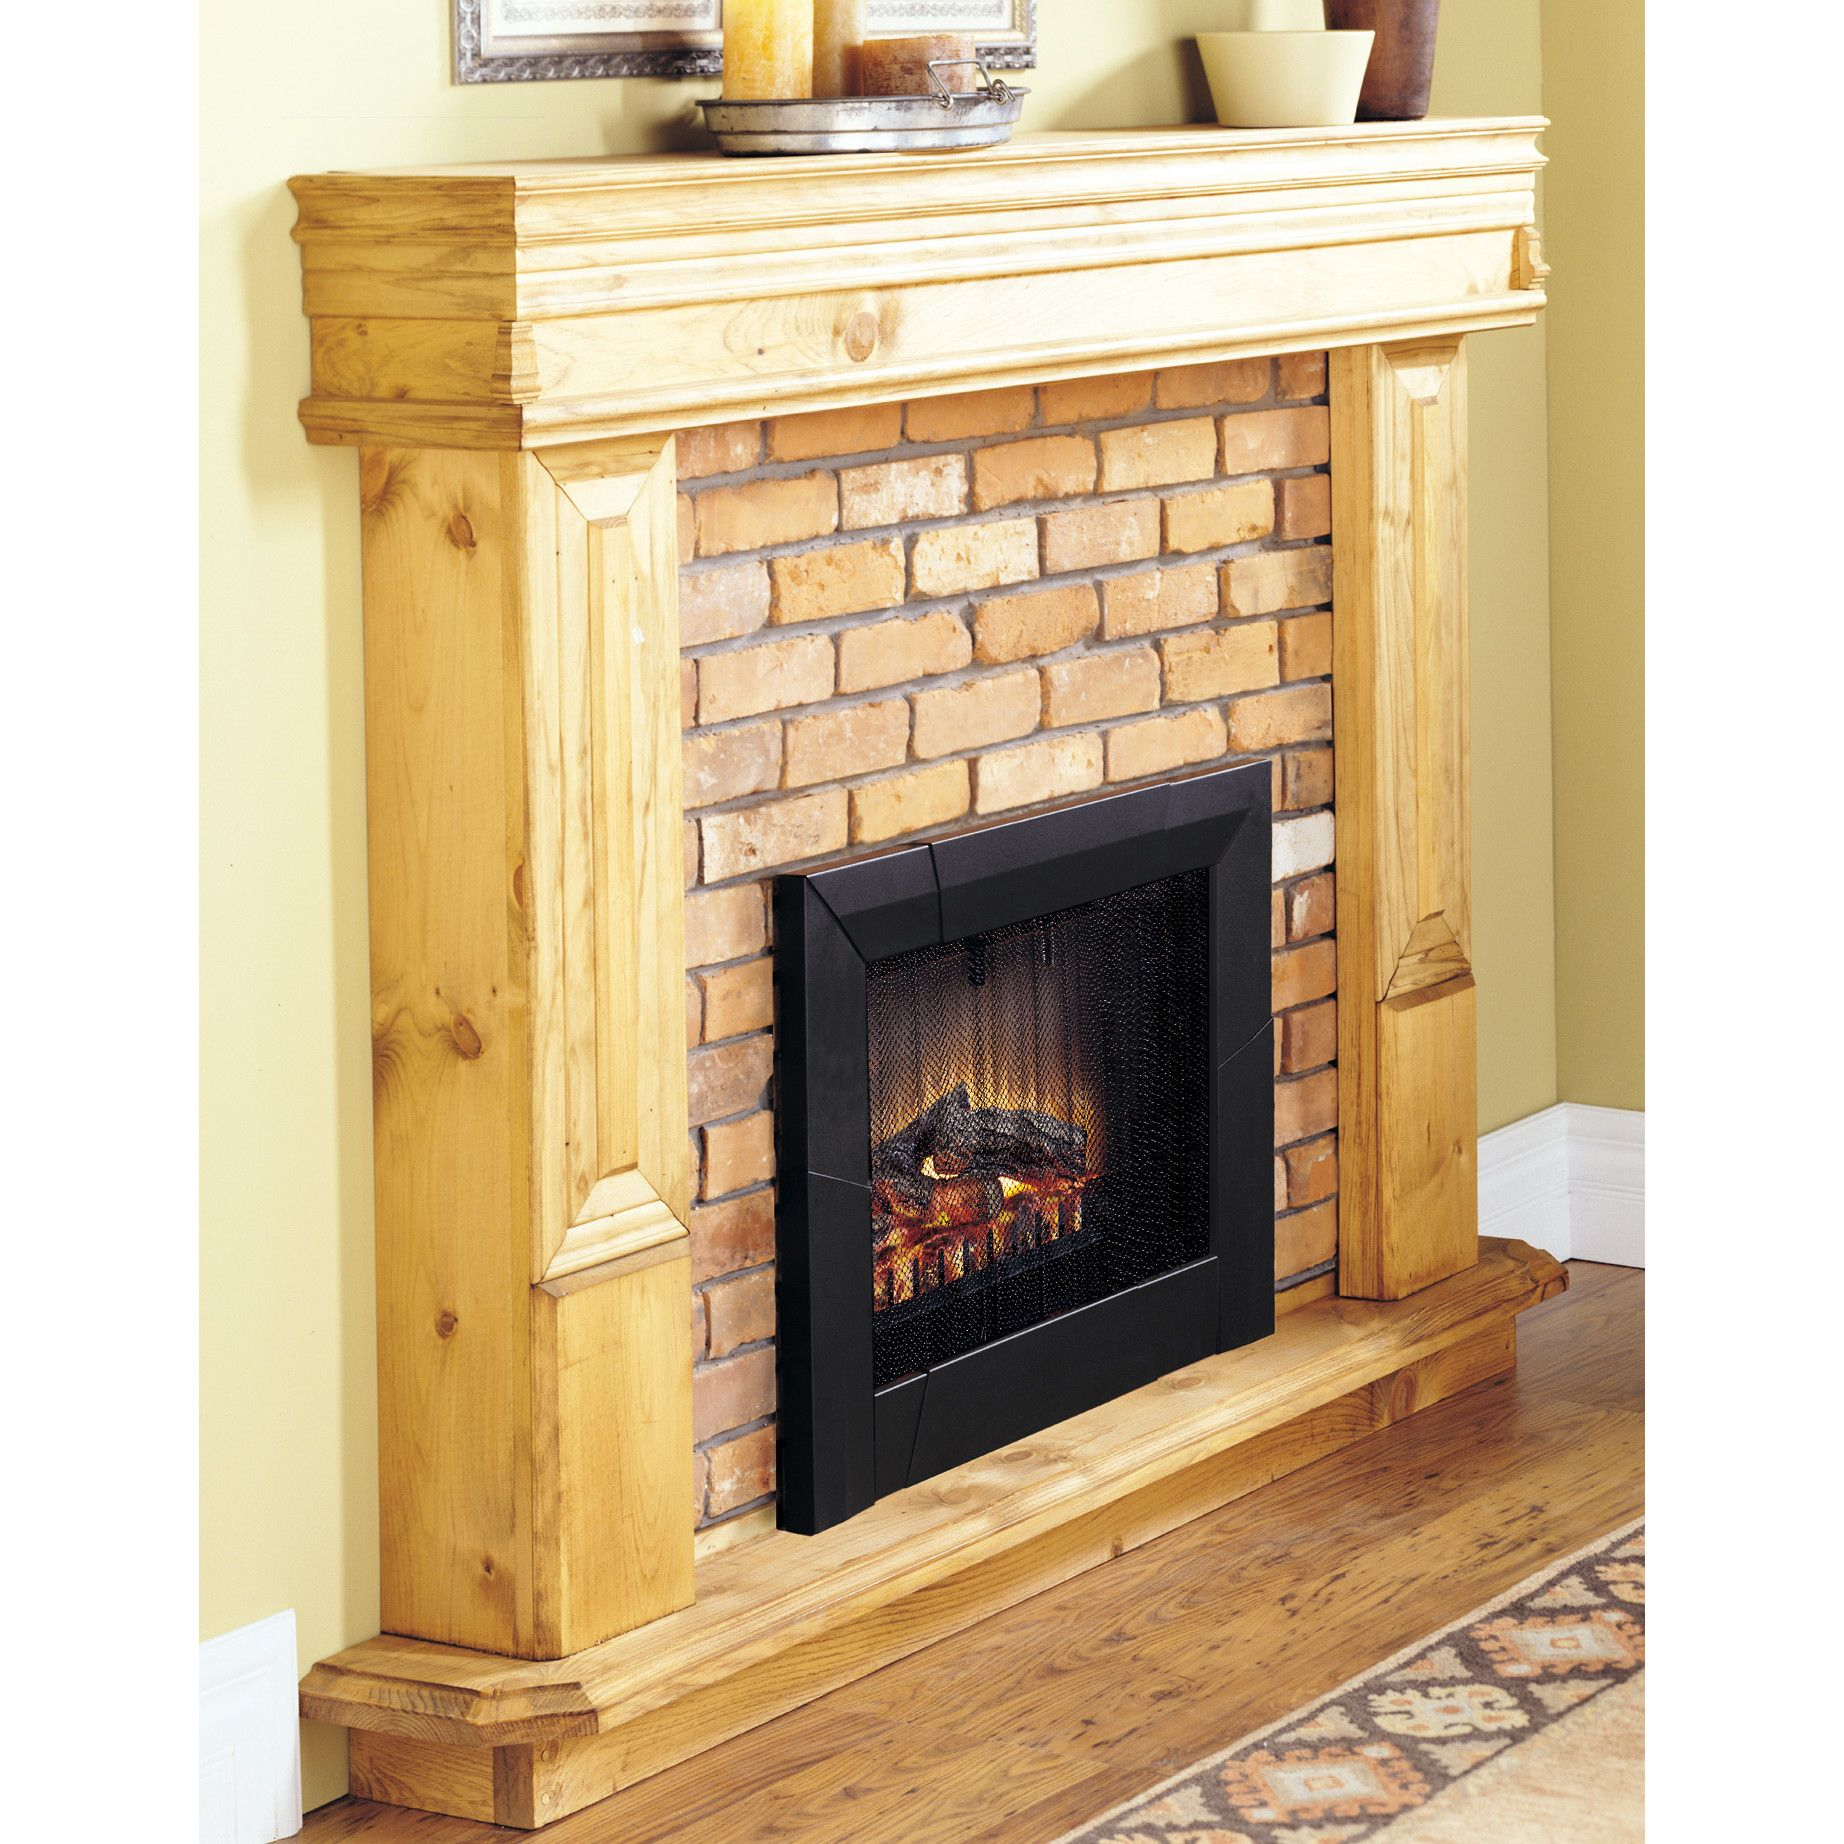 Electraflame Wall Mount Electric Fireplace | Wall mount electric ...